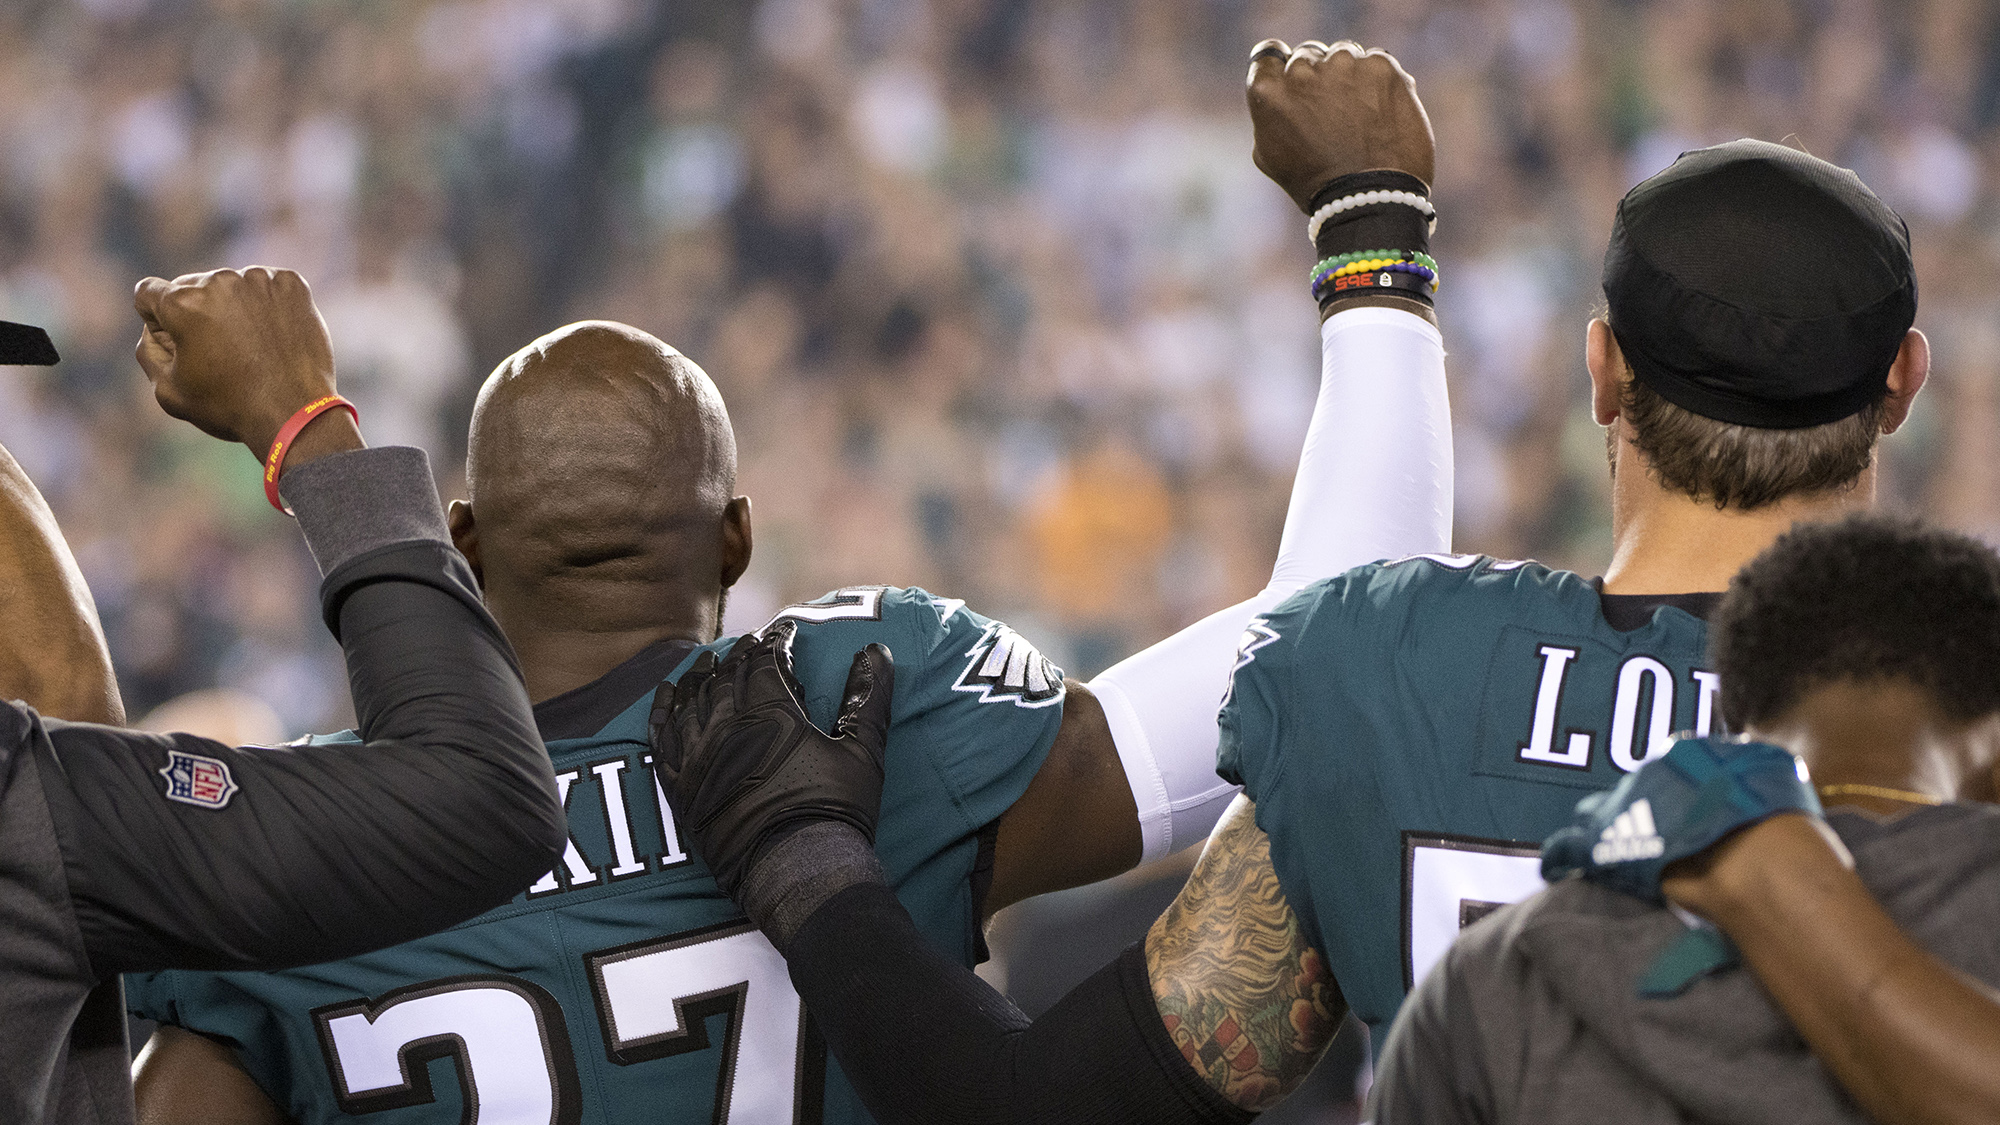 Malcolm Jenkins Chris Long Torrey Smith push for justice